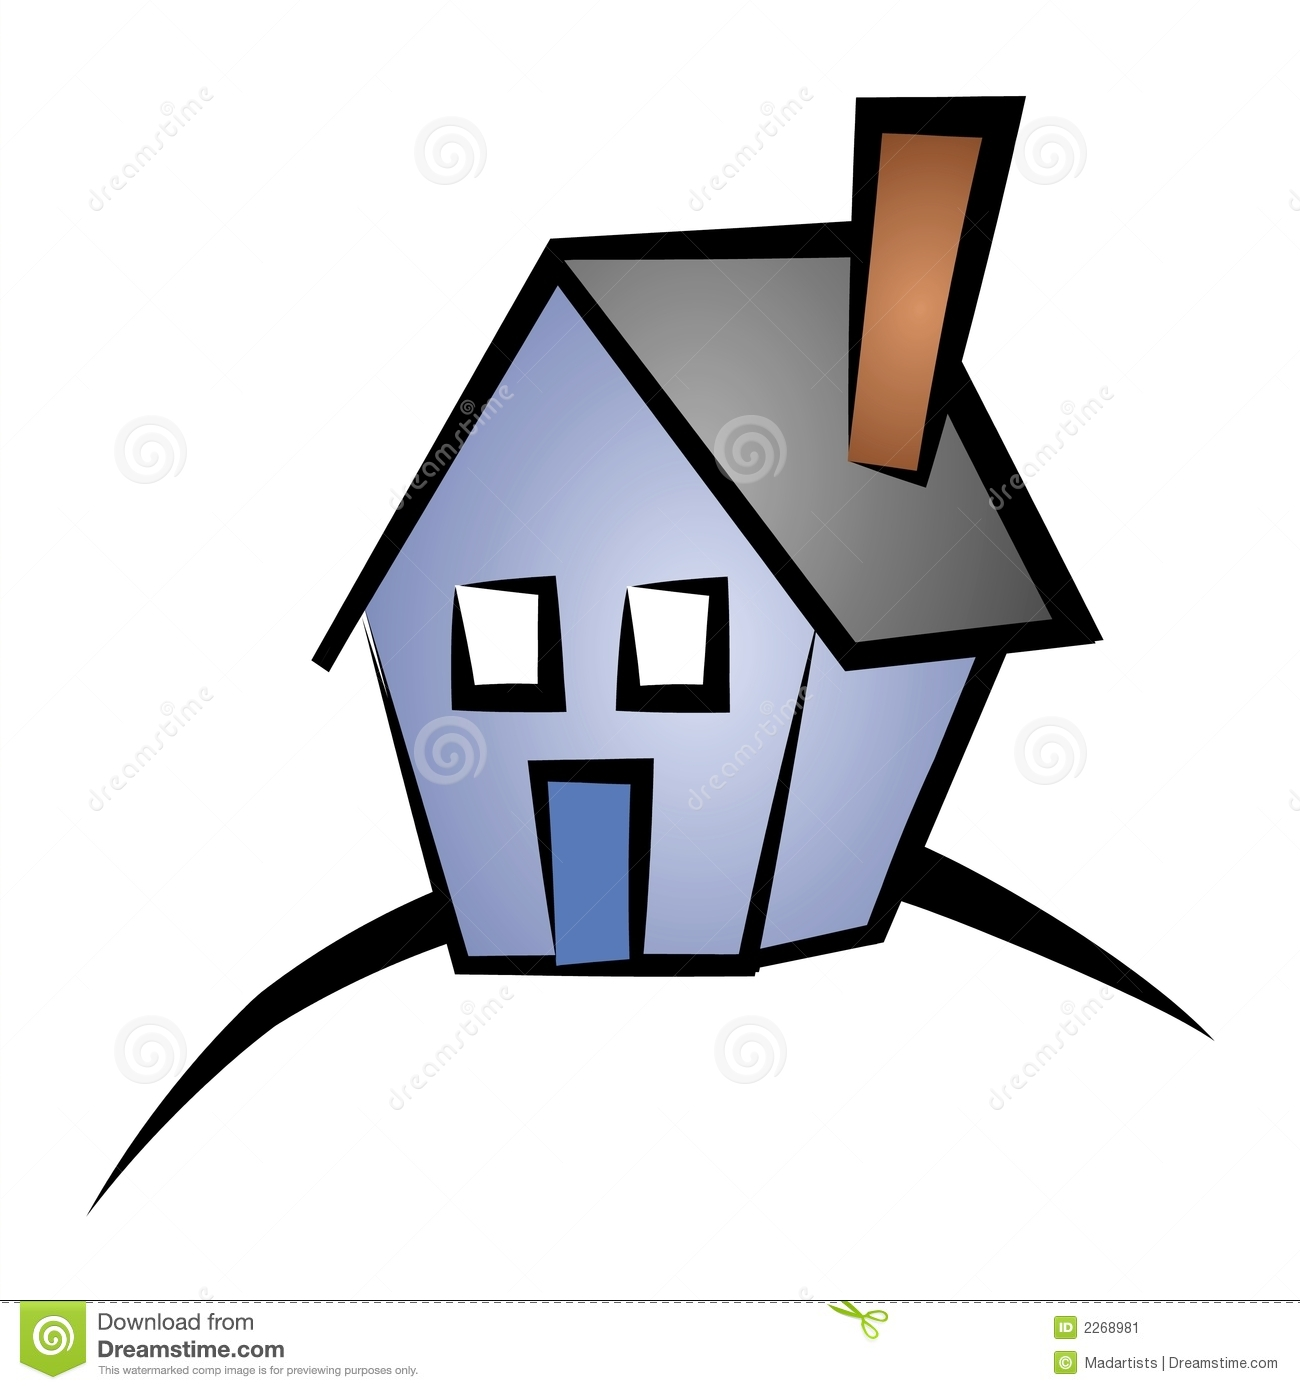 Real Estate Clip Art House 4 Stock Image.